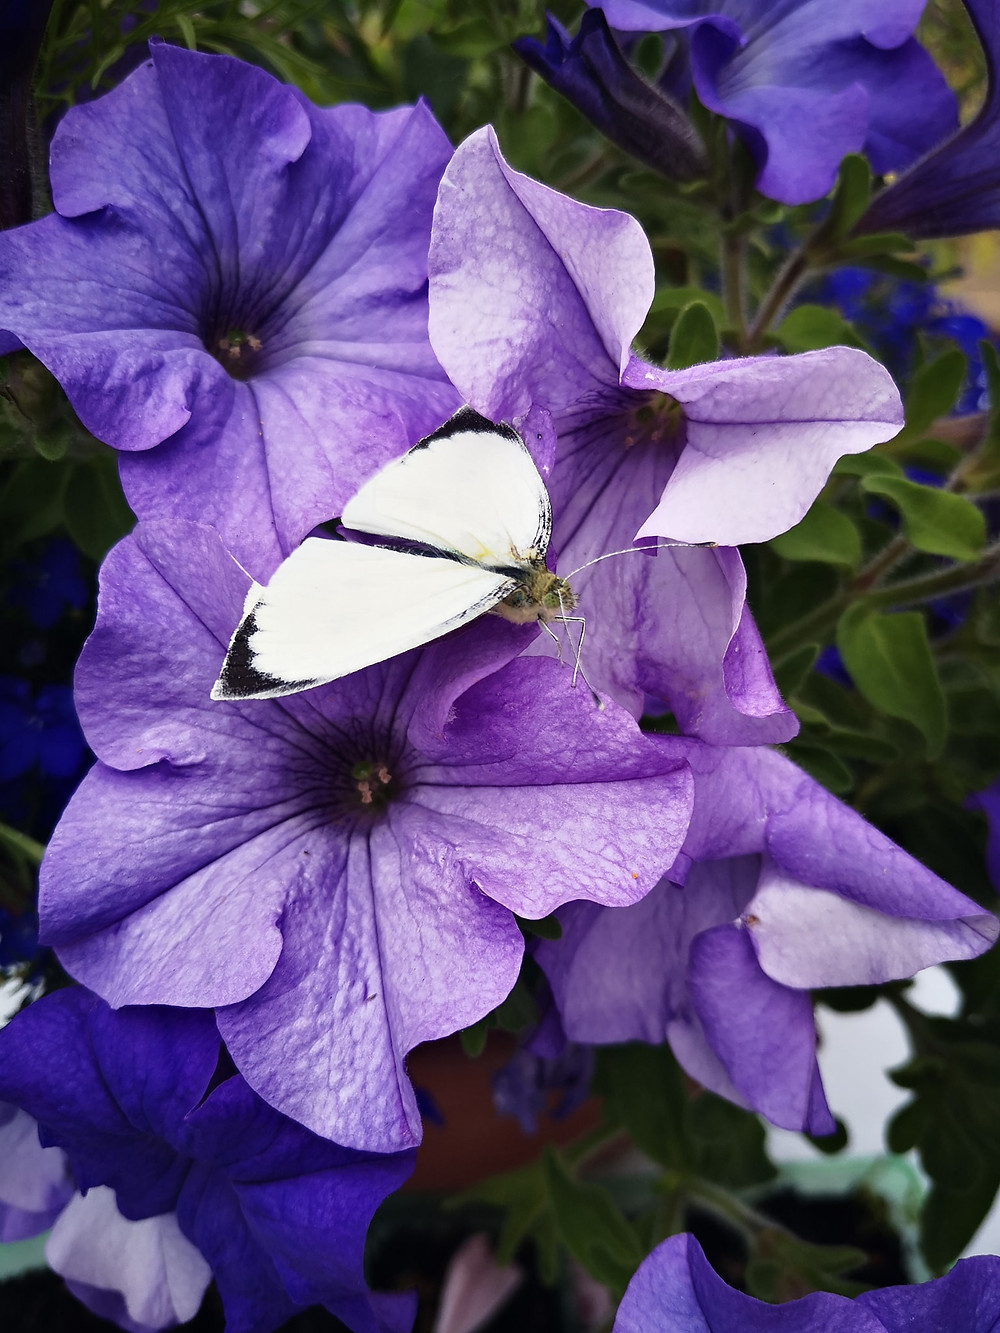 A white moth with black tipped wings on purple petunias